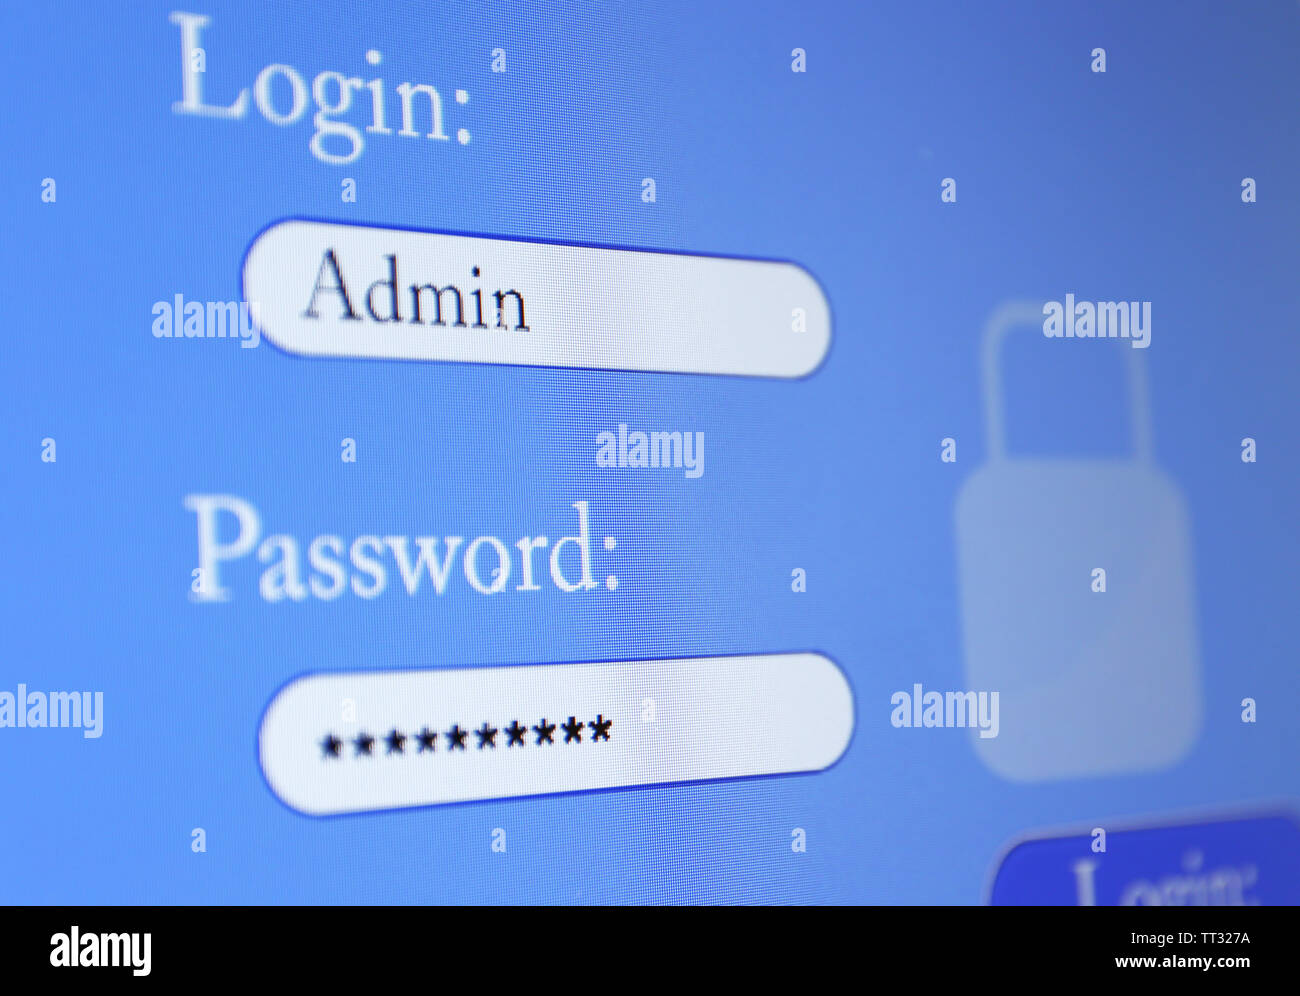 Login and password on monitor screen - Stock Image